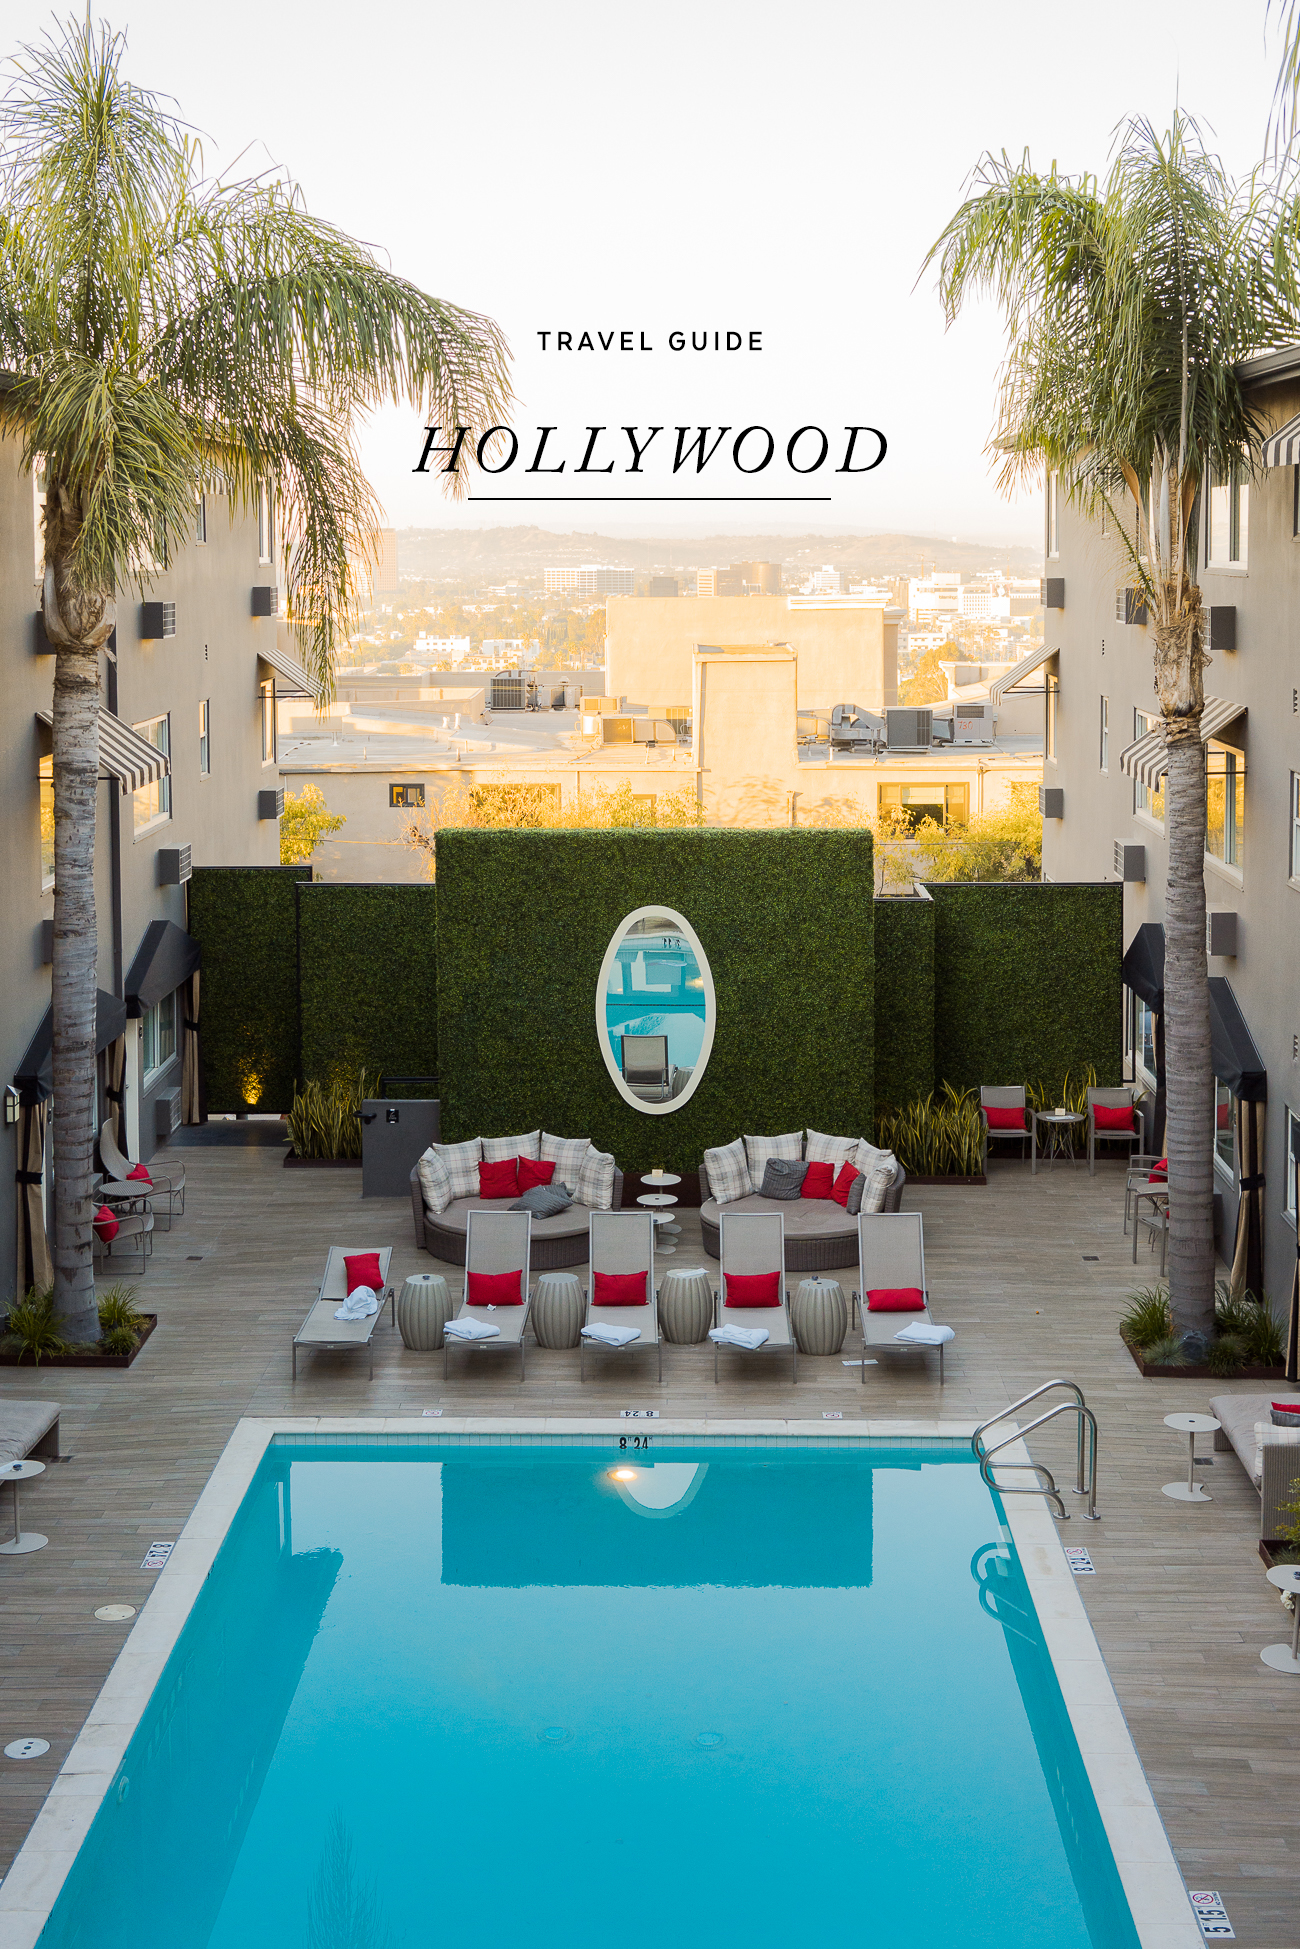 Travel Guide: Hollywood